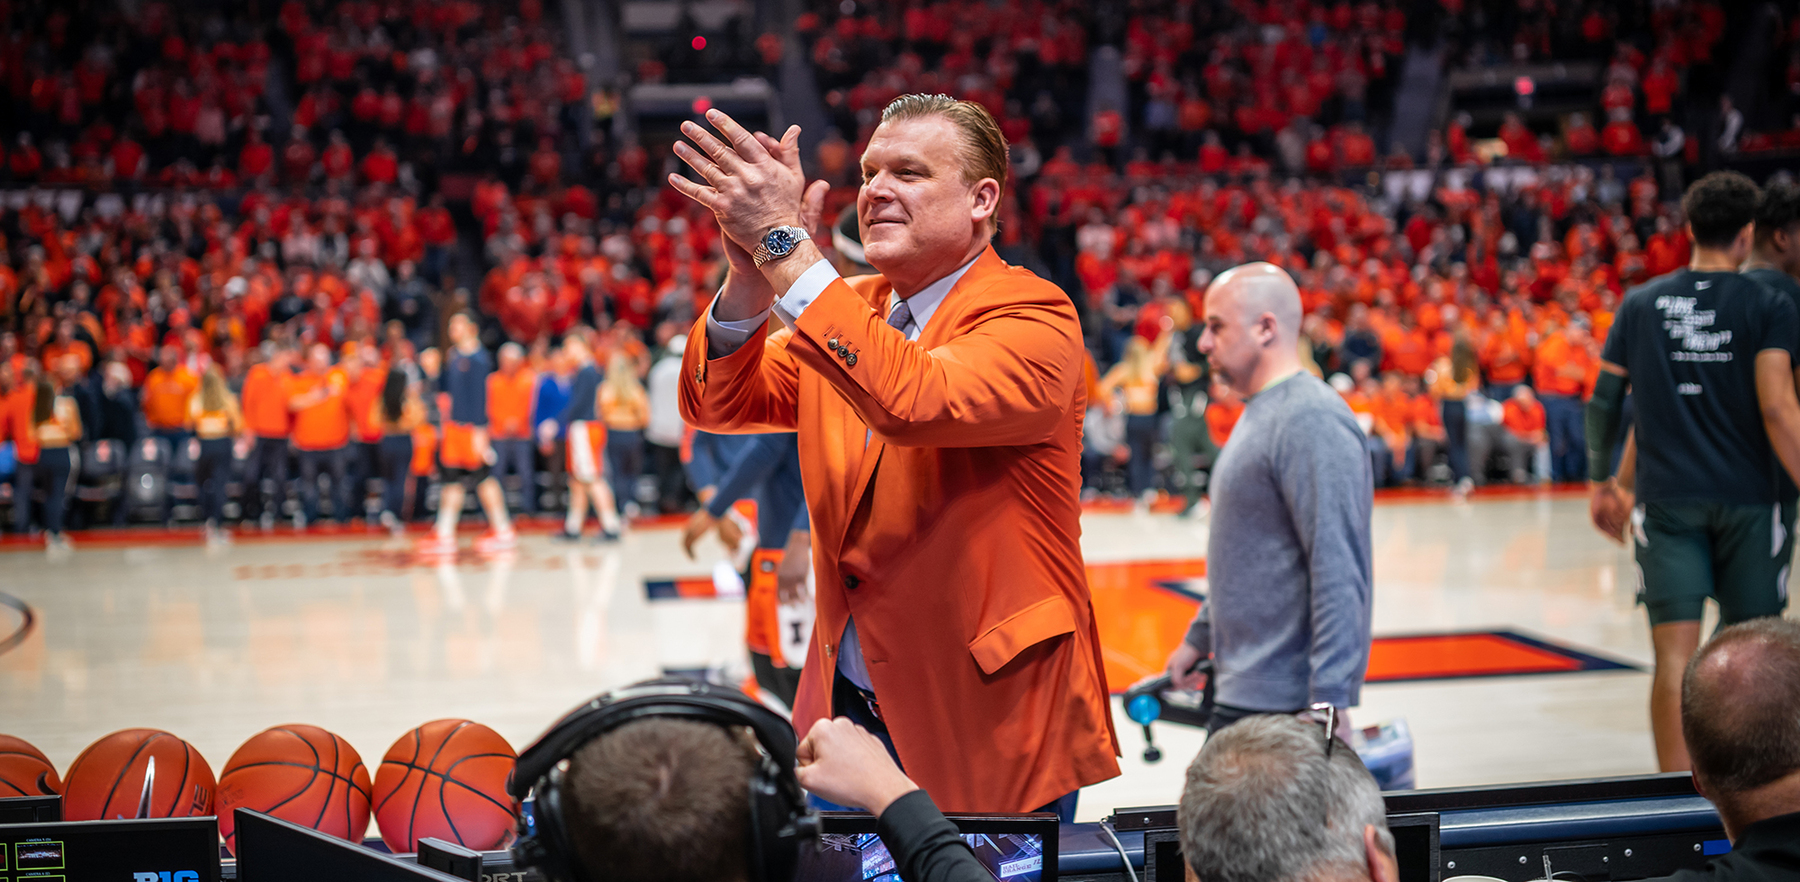 Illinois Coach Brad Underwood claps as he walks courtside in an orange blazer